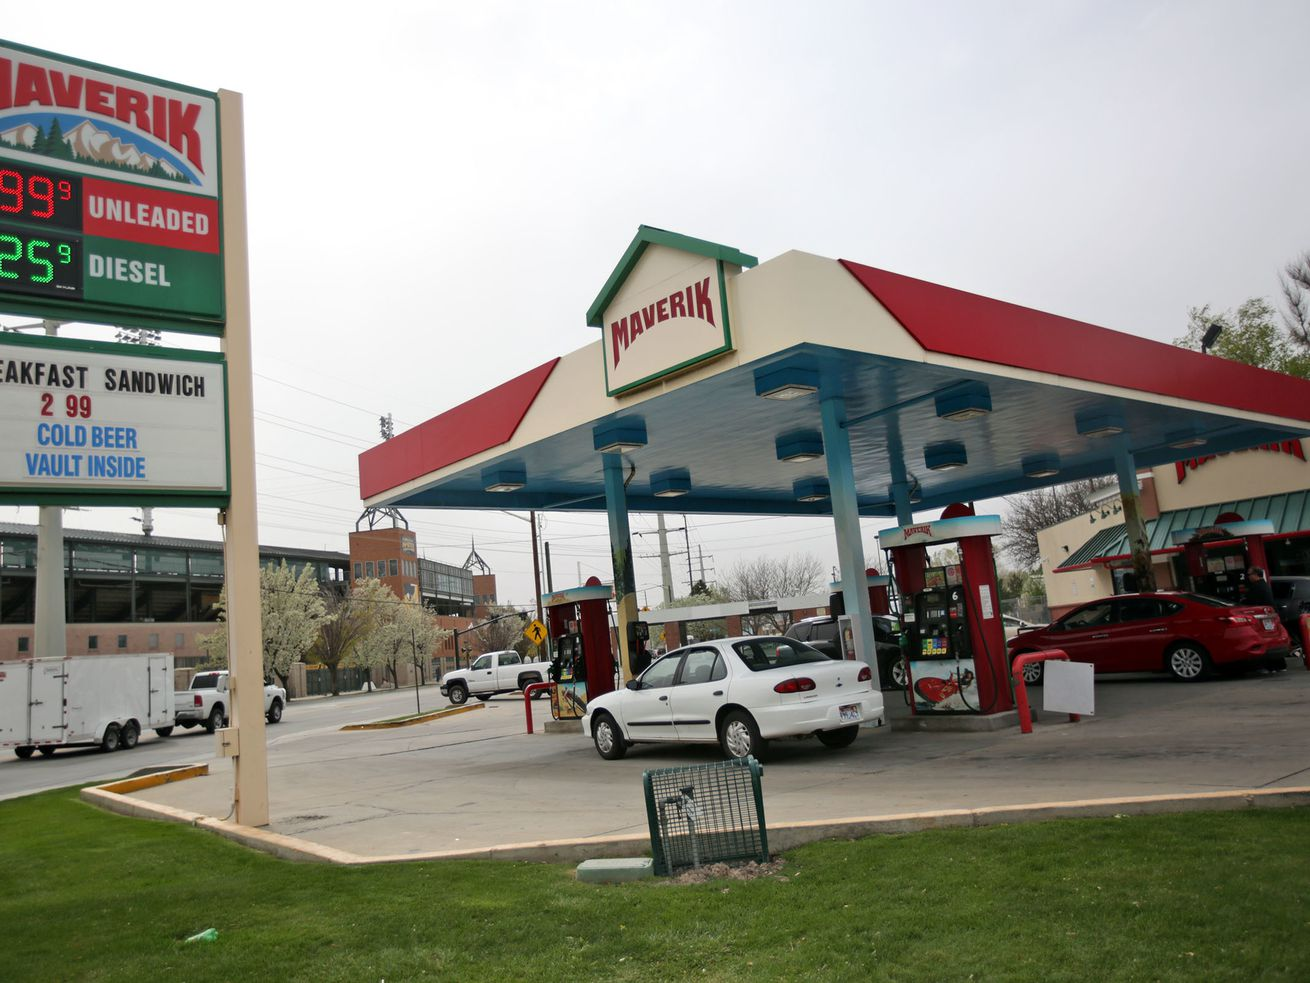 Should lawmakers boost the gas tax or impose tolls?